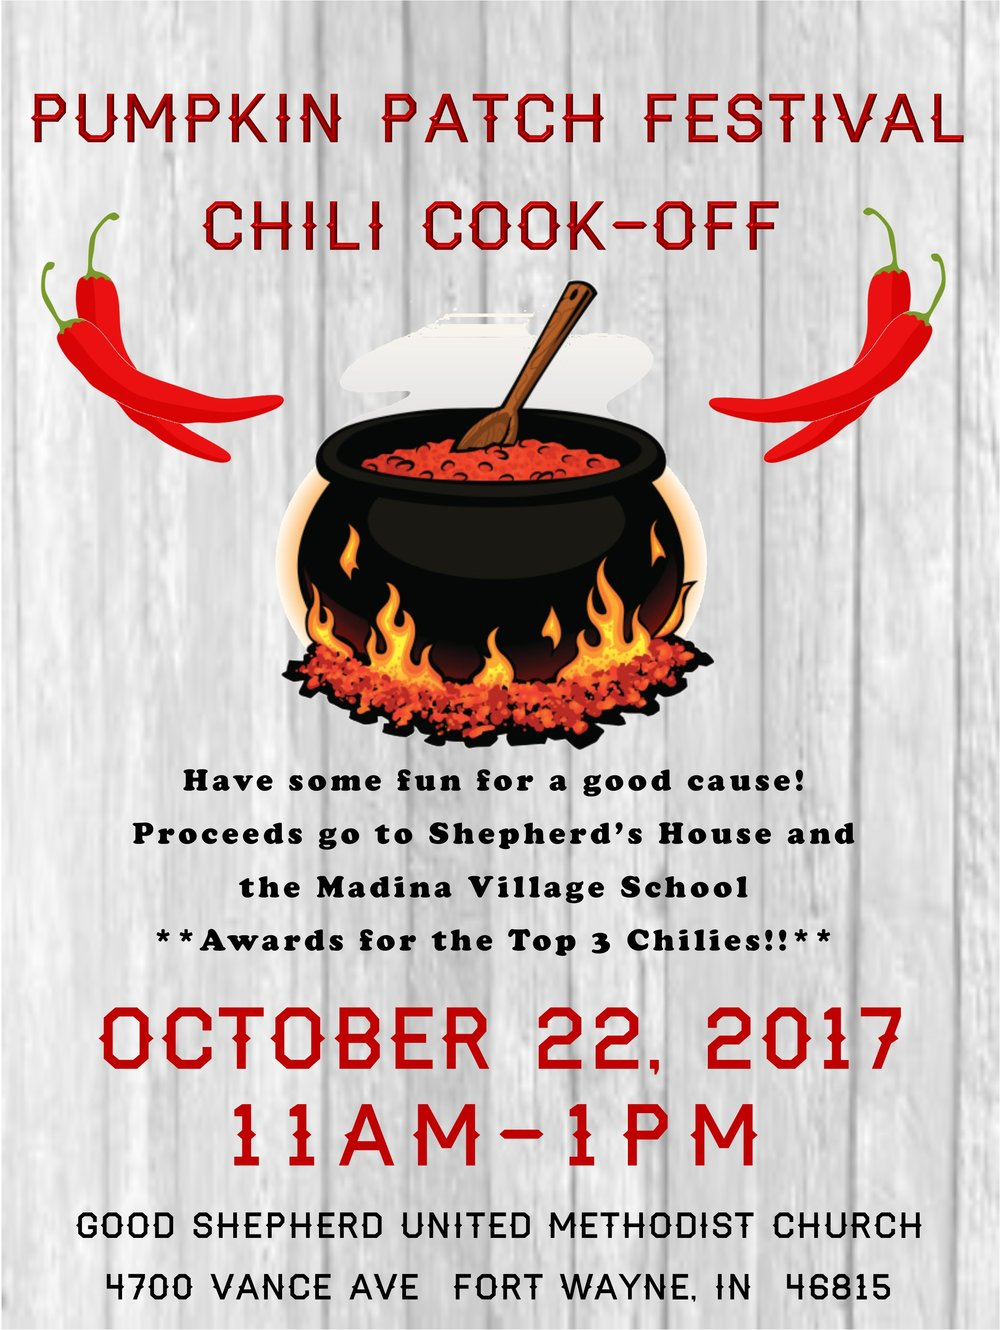 chili cook off flyer.jpg